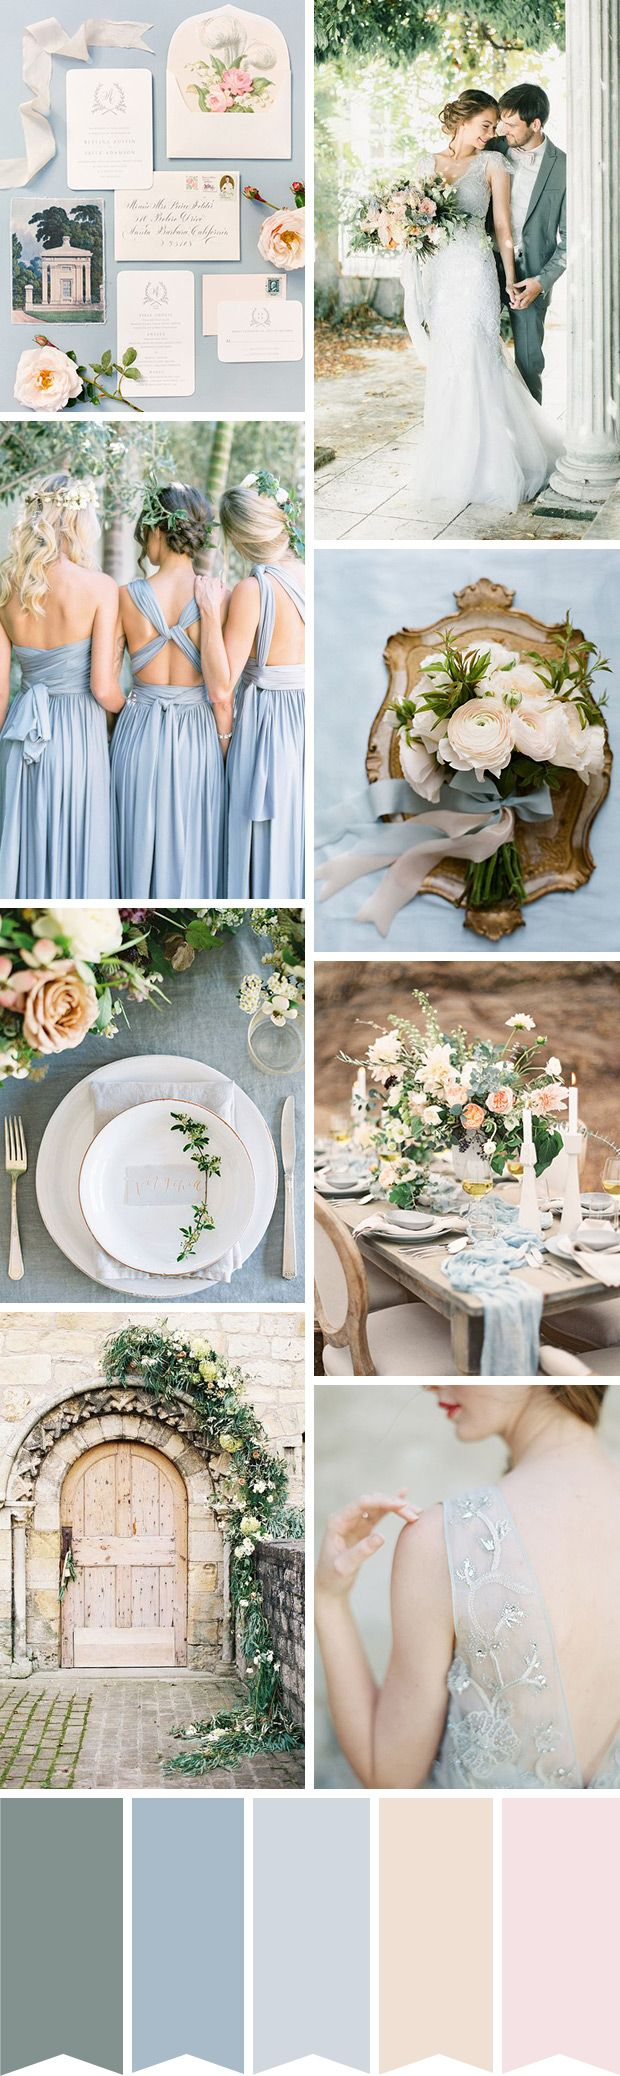 Classic and Chic: A Dreamy Tuscan-Inspired Wedding // see how to create this look on www.onefabday.com